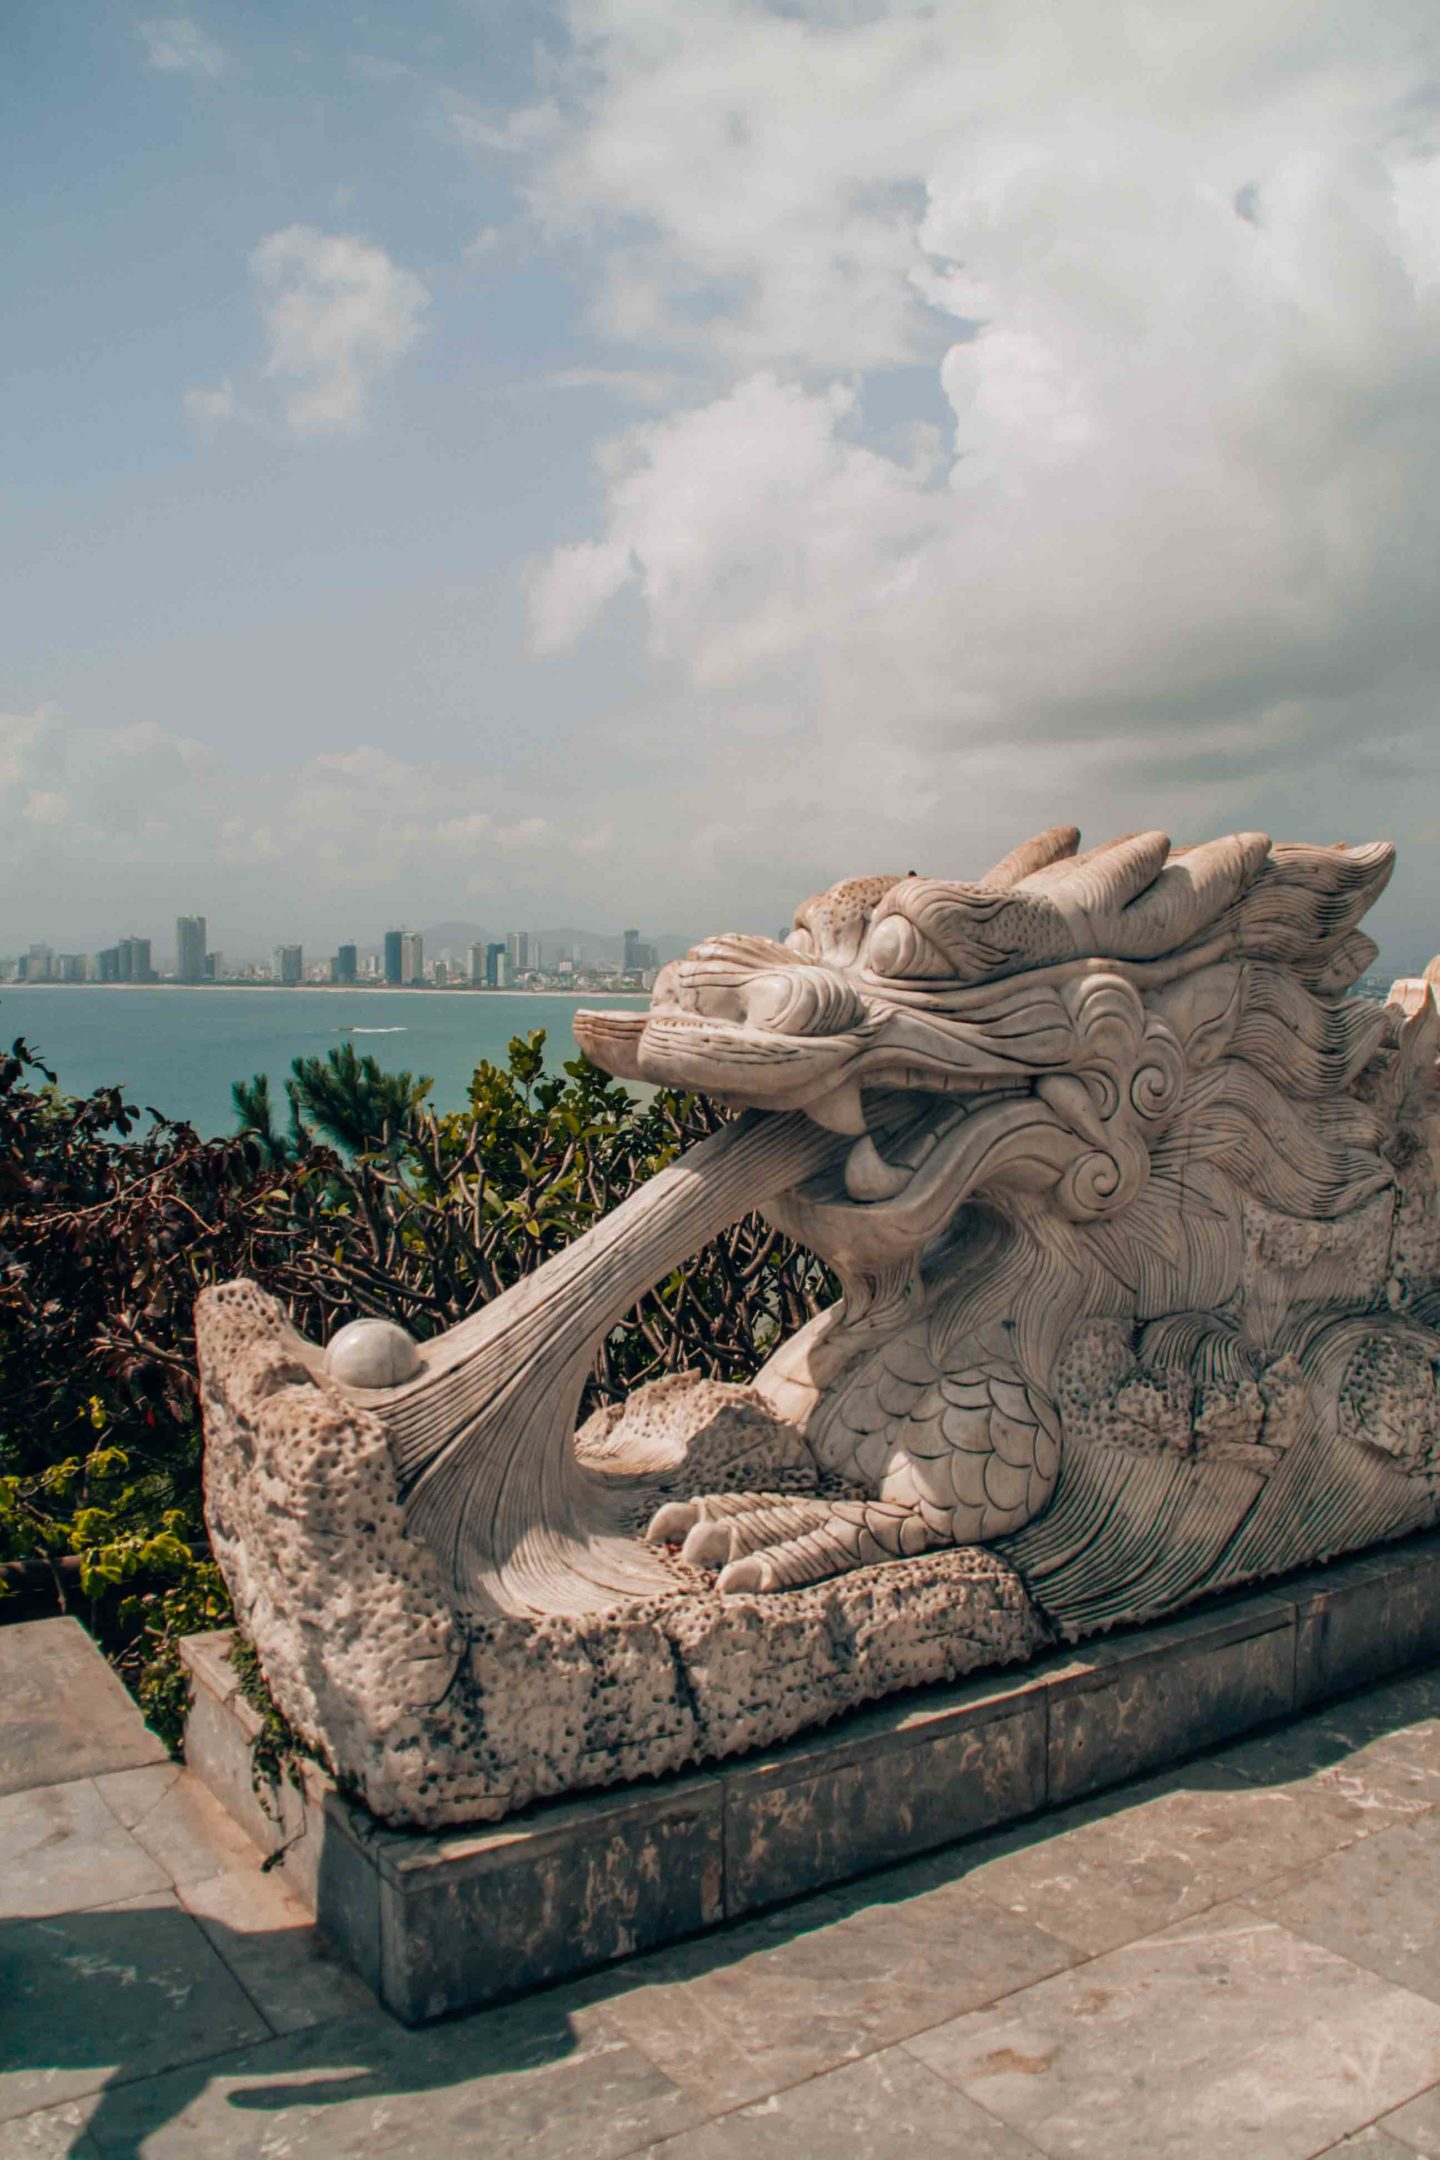 Architecture dragon en face de Lady Buddha à Da Nang